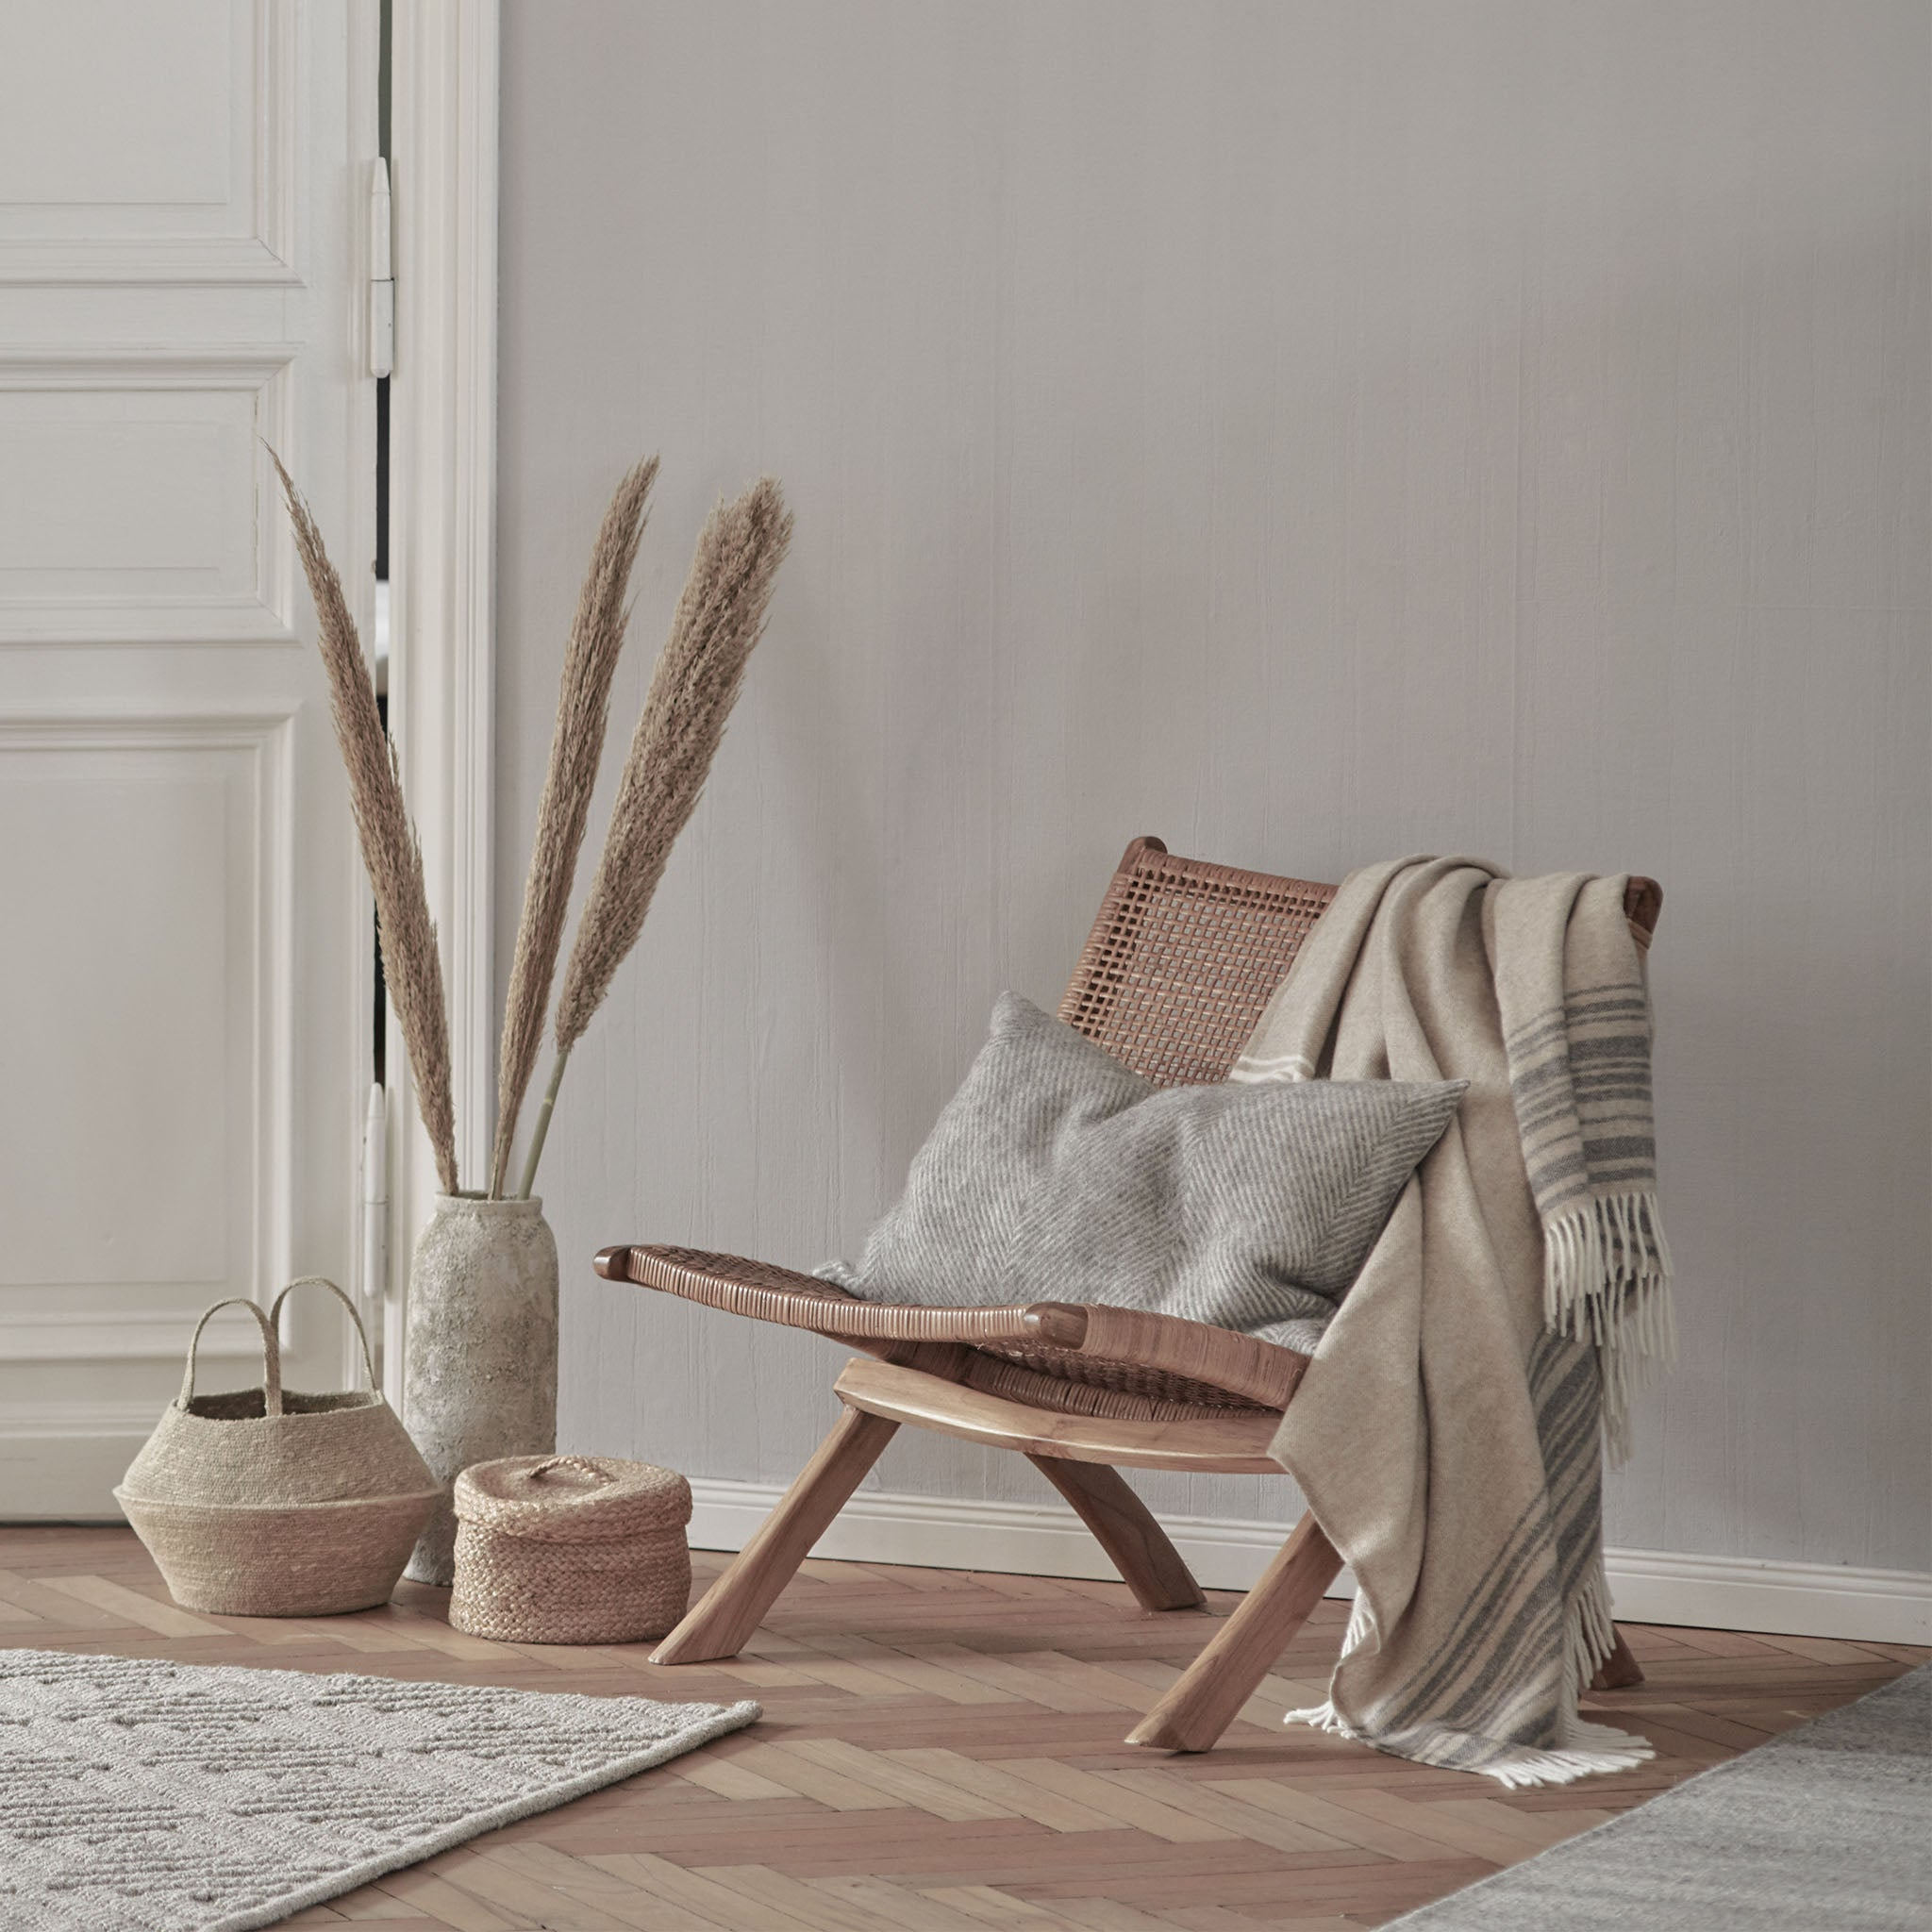 Bakaru Rattan Chair in natural | Home & Living inspiration | URBANARA